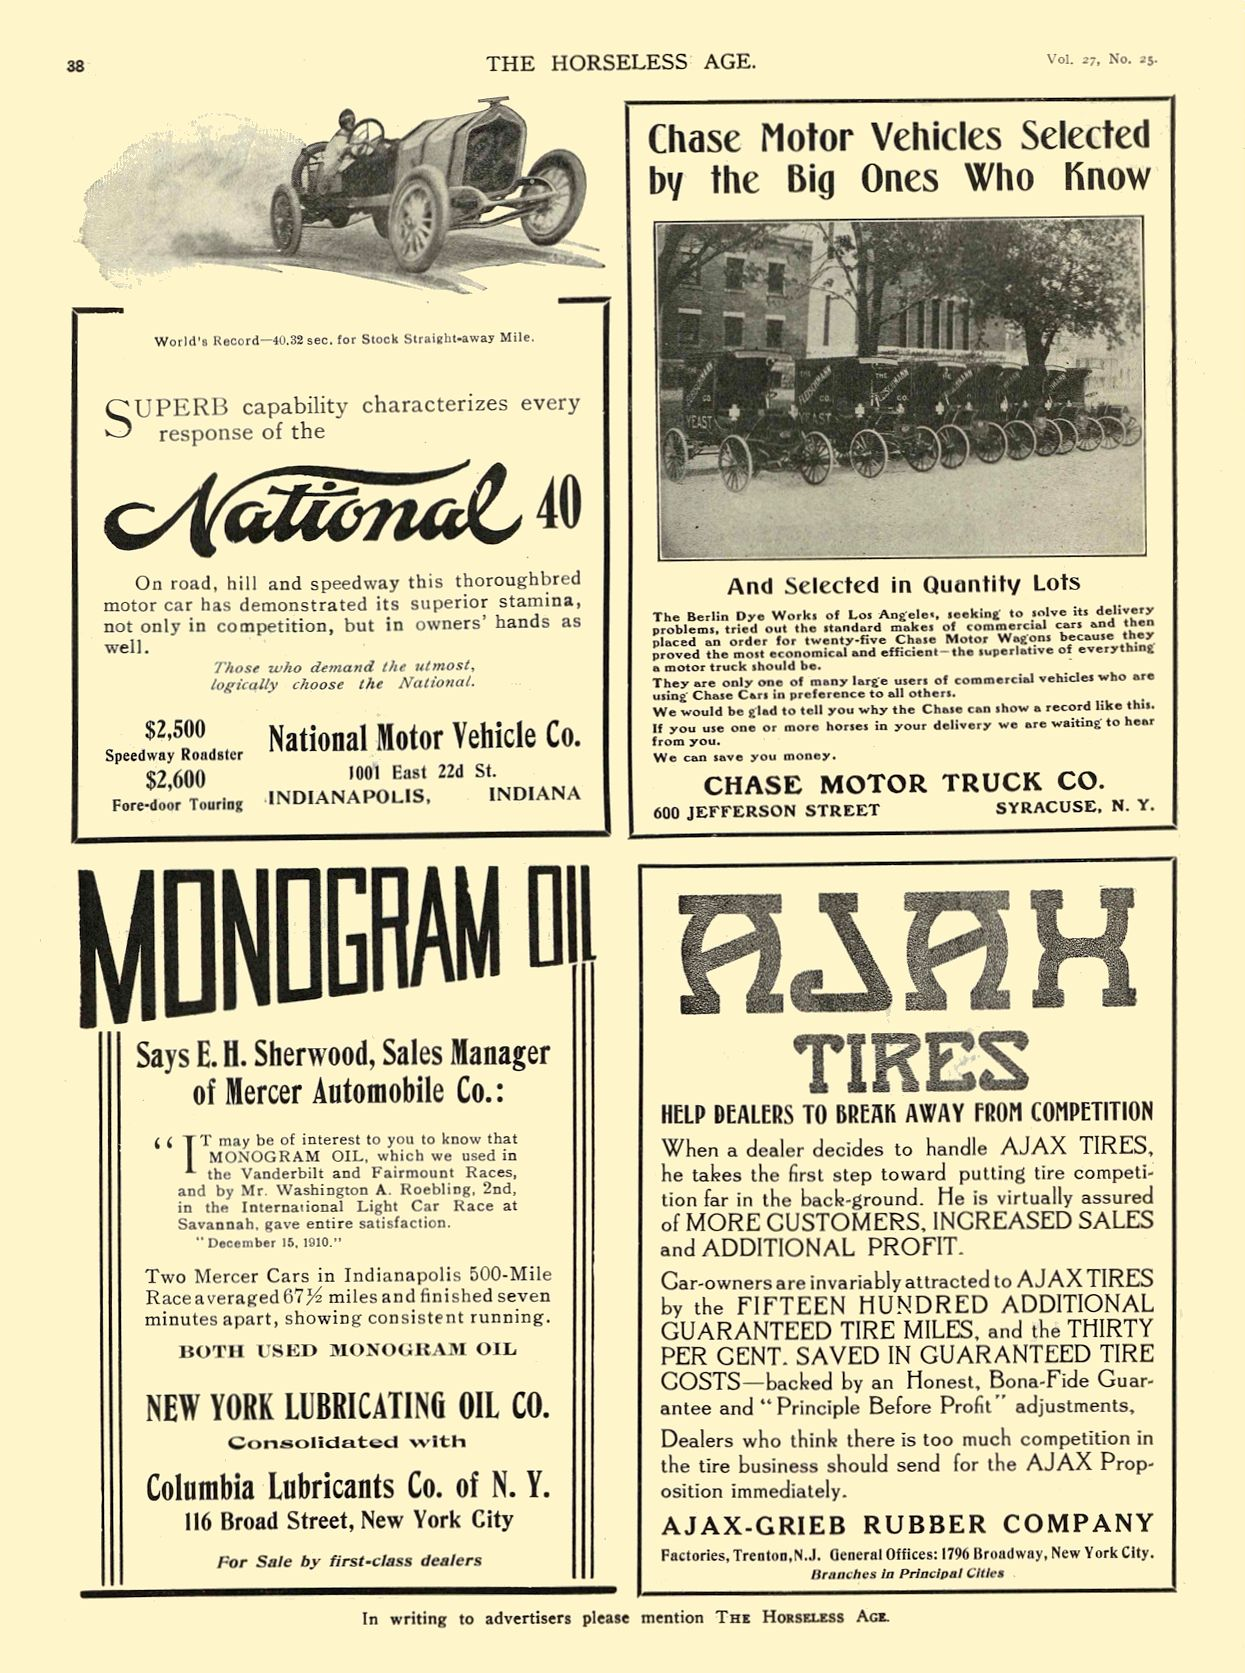 1911 6 21 NATIONAL National 40 National Motor Vehicle Co. Indianapolis, IND THE HORSELESS AGE June 21, 1911 8.5″x11.5″ page 38